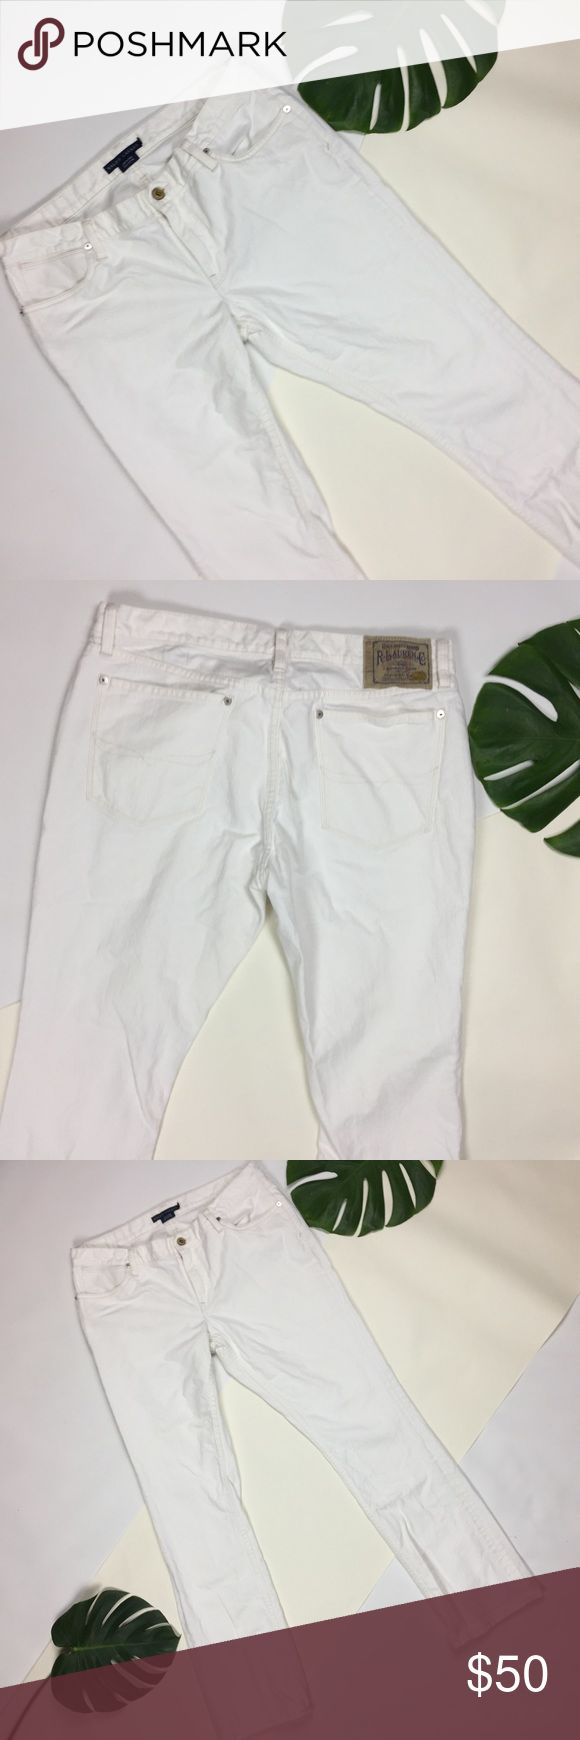 Ralph Lauren 🗝 mens sz 32 madison white jeans Ralph Lauren 🗝 mens size 32 waist madison 888 white jeans in excellent condition. Straight leg relaxed fit white trouser denim jeans. Ralph Lauren Jeans Slim Straight